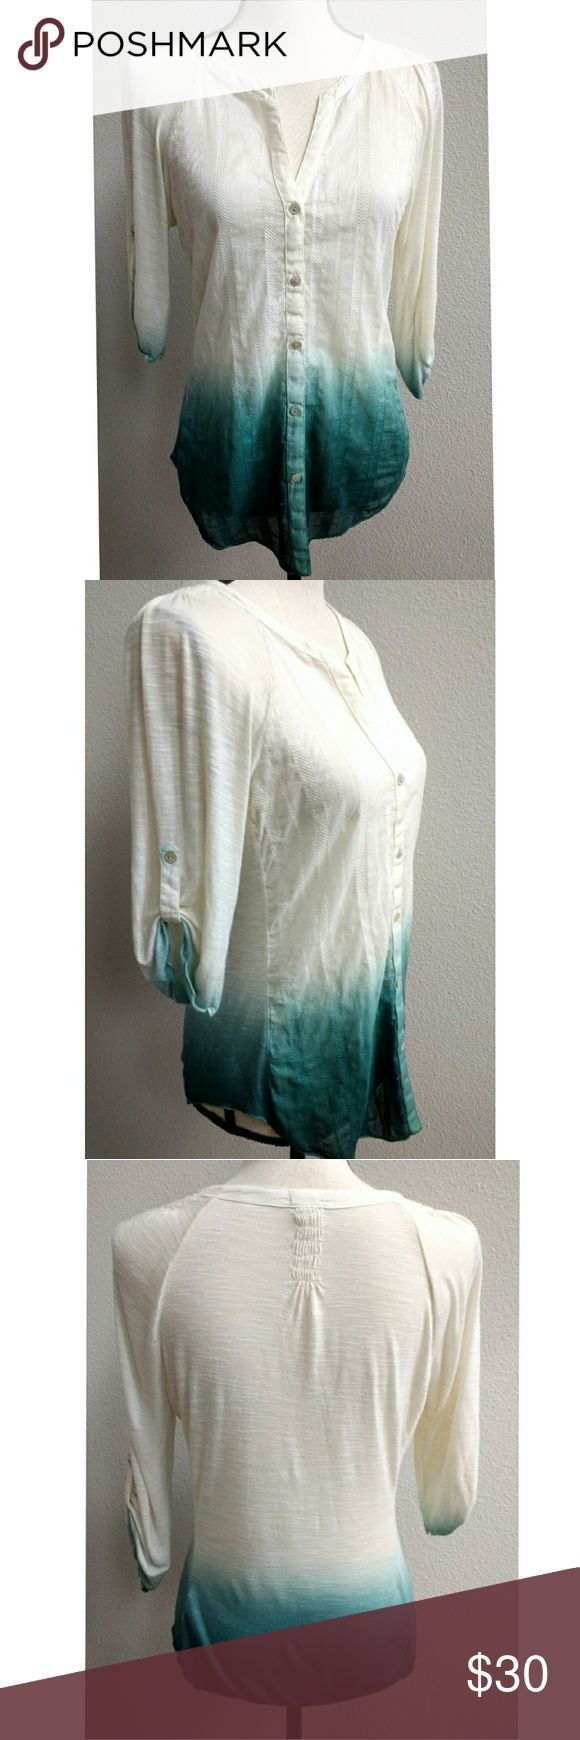 """Anthropologie TINY Dip Dye Ombre Shirt Size Medium TINY from Anthro, Ivory to Forest Green Ombre Dip Due Popover Top with roll cuff button tab sleeve.  Condition: No holes or stains. Looks to run a little small.   Size Label: Medium Flat lay measurements: 25"""" Length 17.5"""" Left to right underarm 13"""" length from underarm to bottom hem Anthropologie Tops Blouses"""